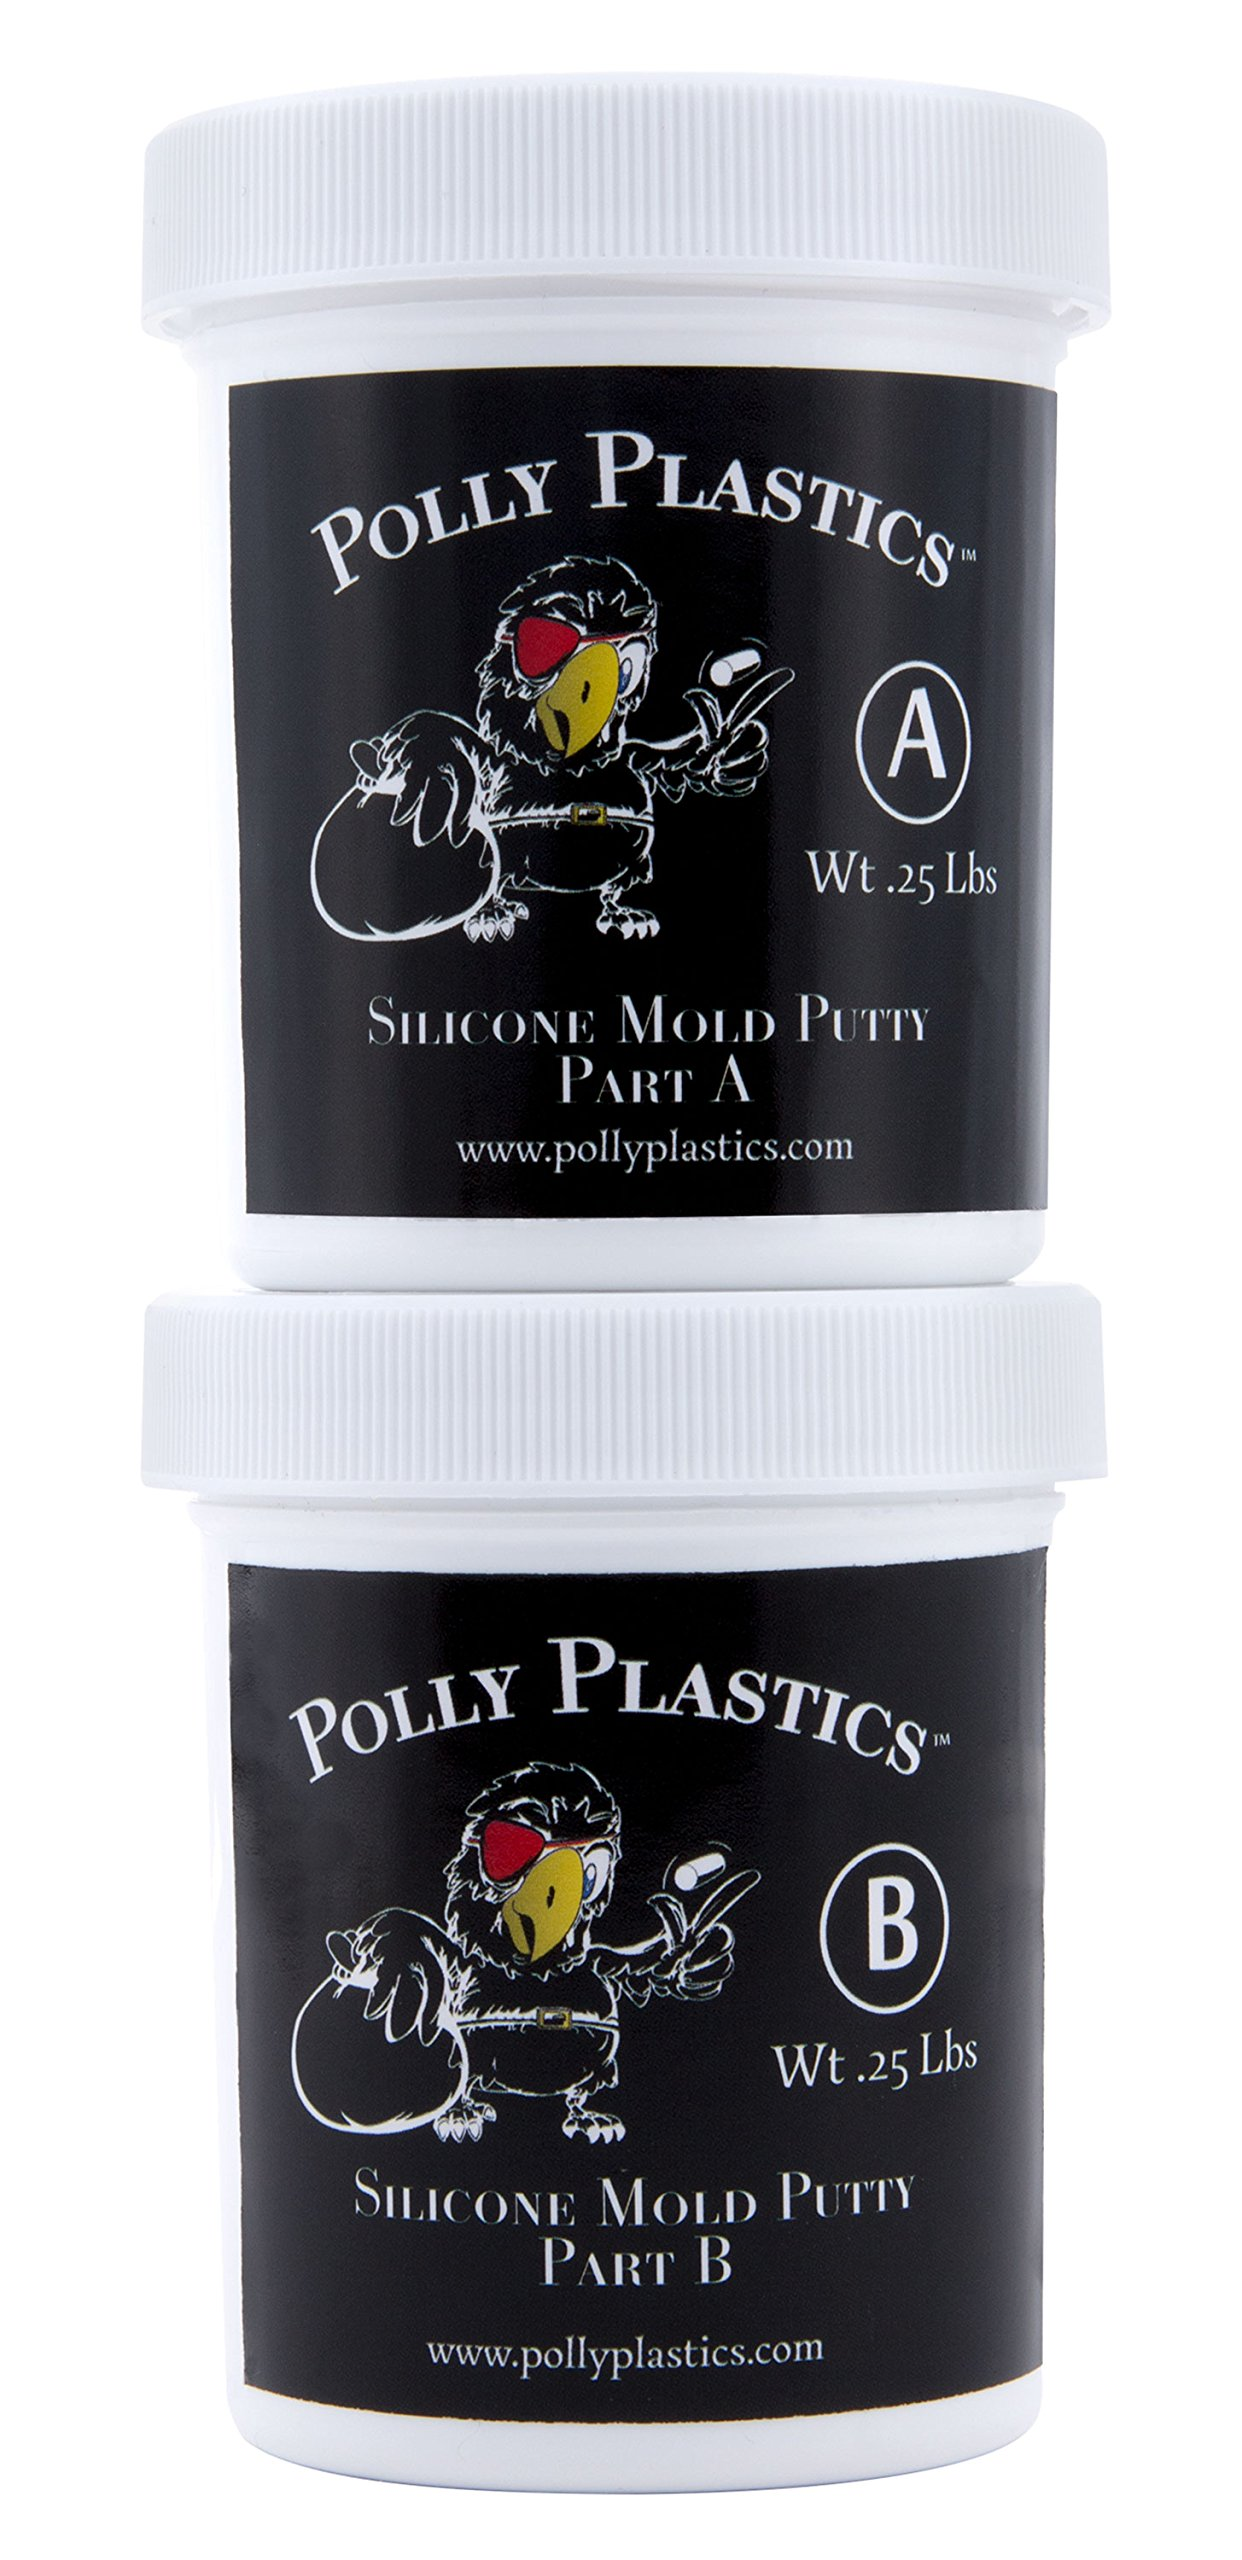 Polly Plastics Silicone Molding Putty - 1/2 Lb.